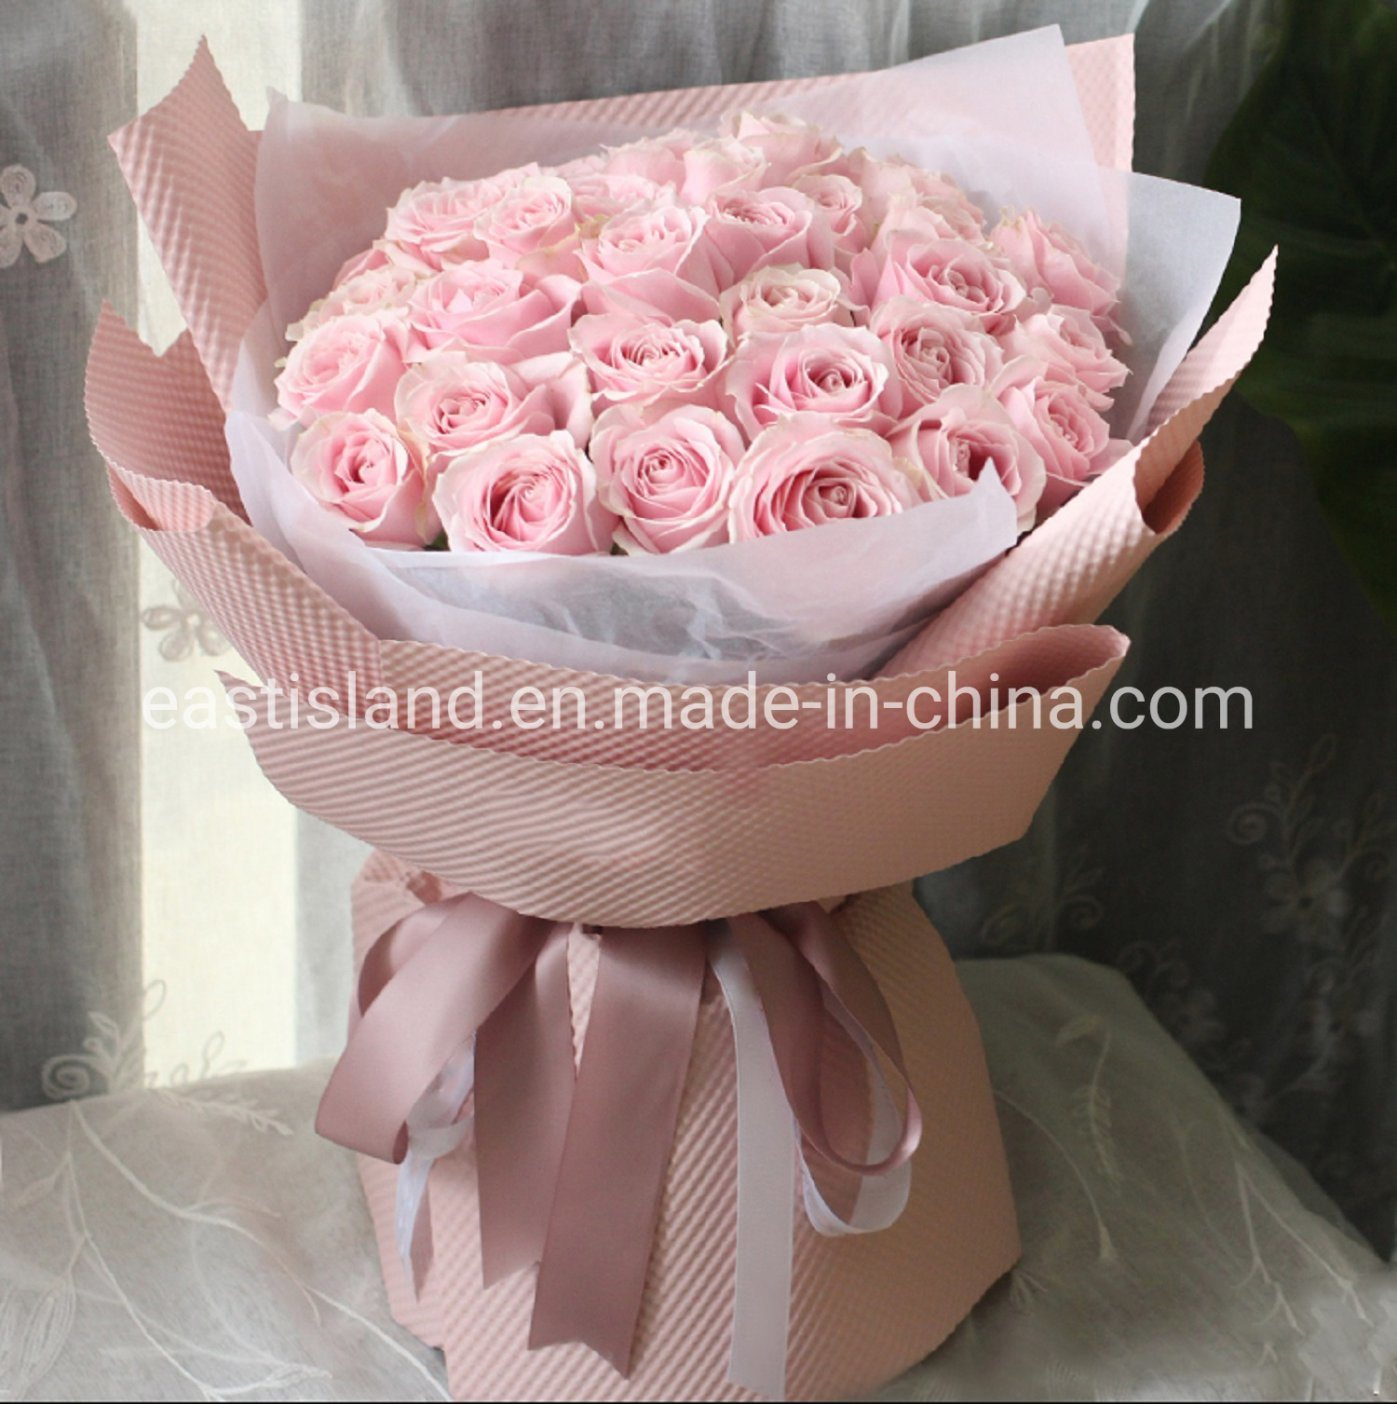 Hot Item Hot Sale Embossed Paper Flower Bouquet Wrapping Paper For Flowers Gifts Wholesale